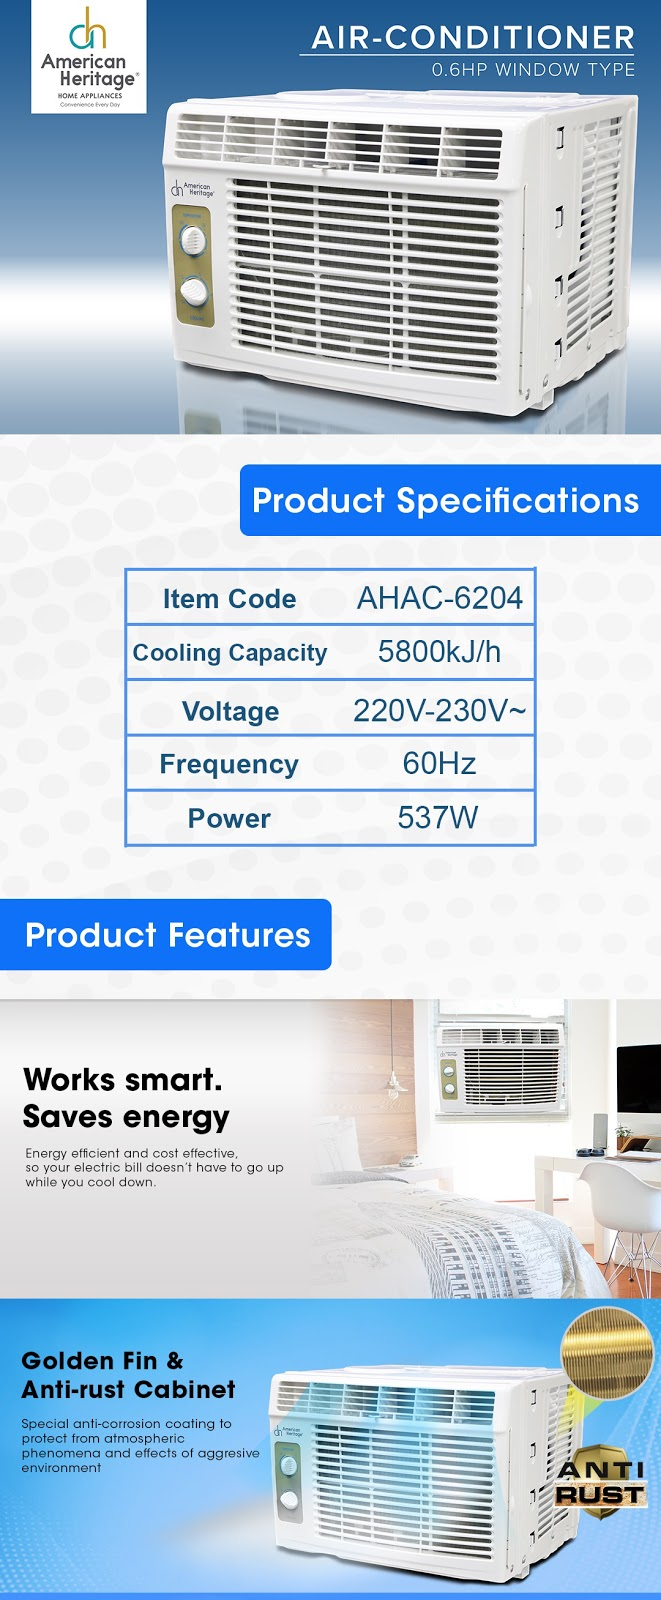 aircon for sale, aircon for sale philippines